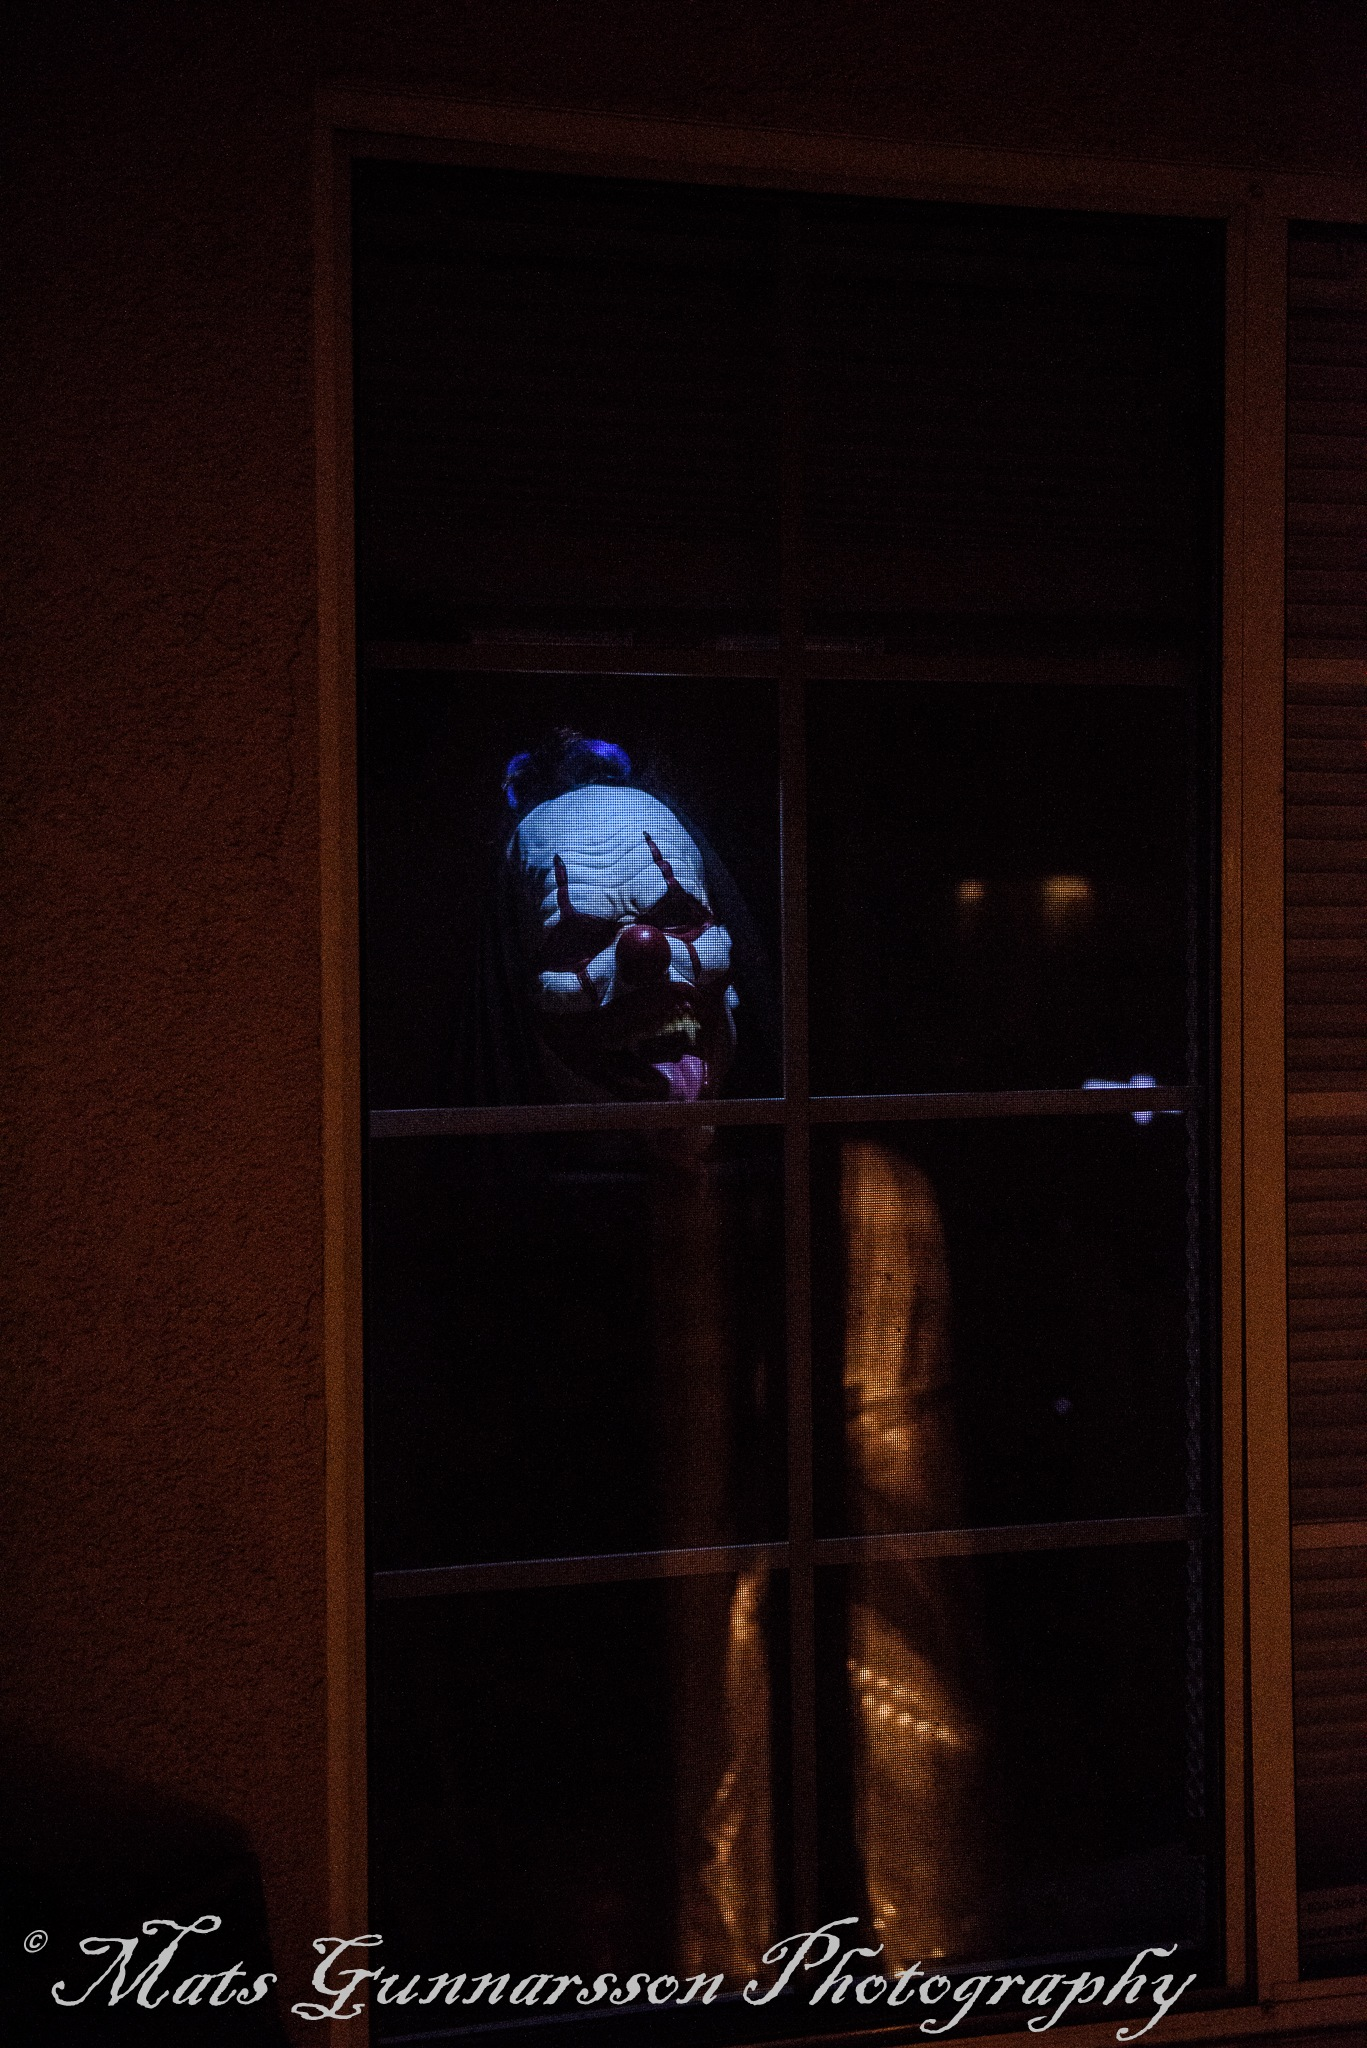 Evil clown in the window by MatsGunnarssonPhotography